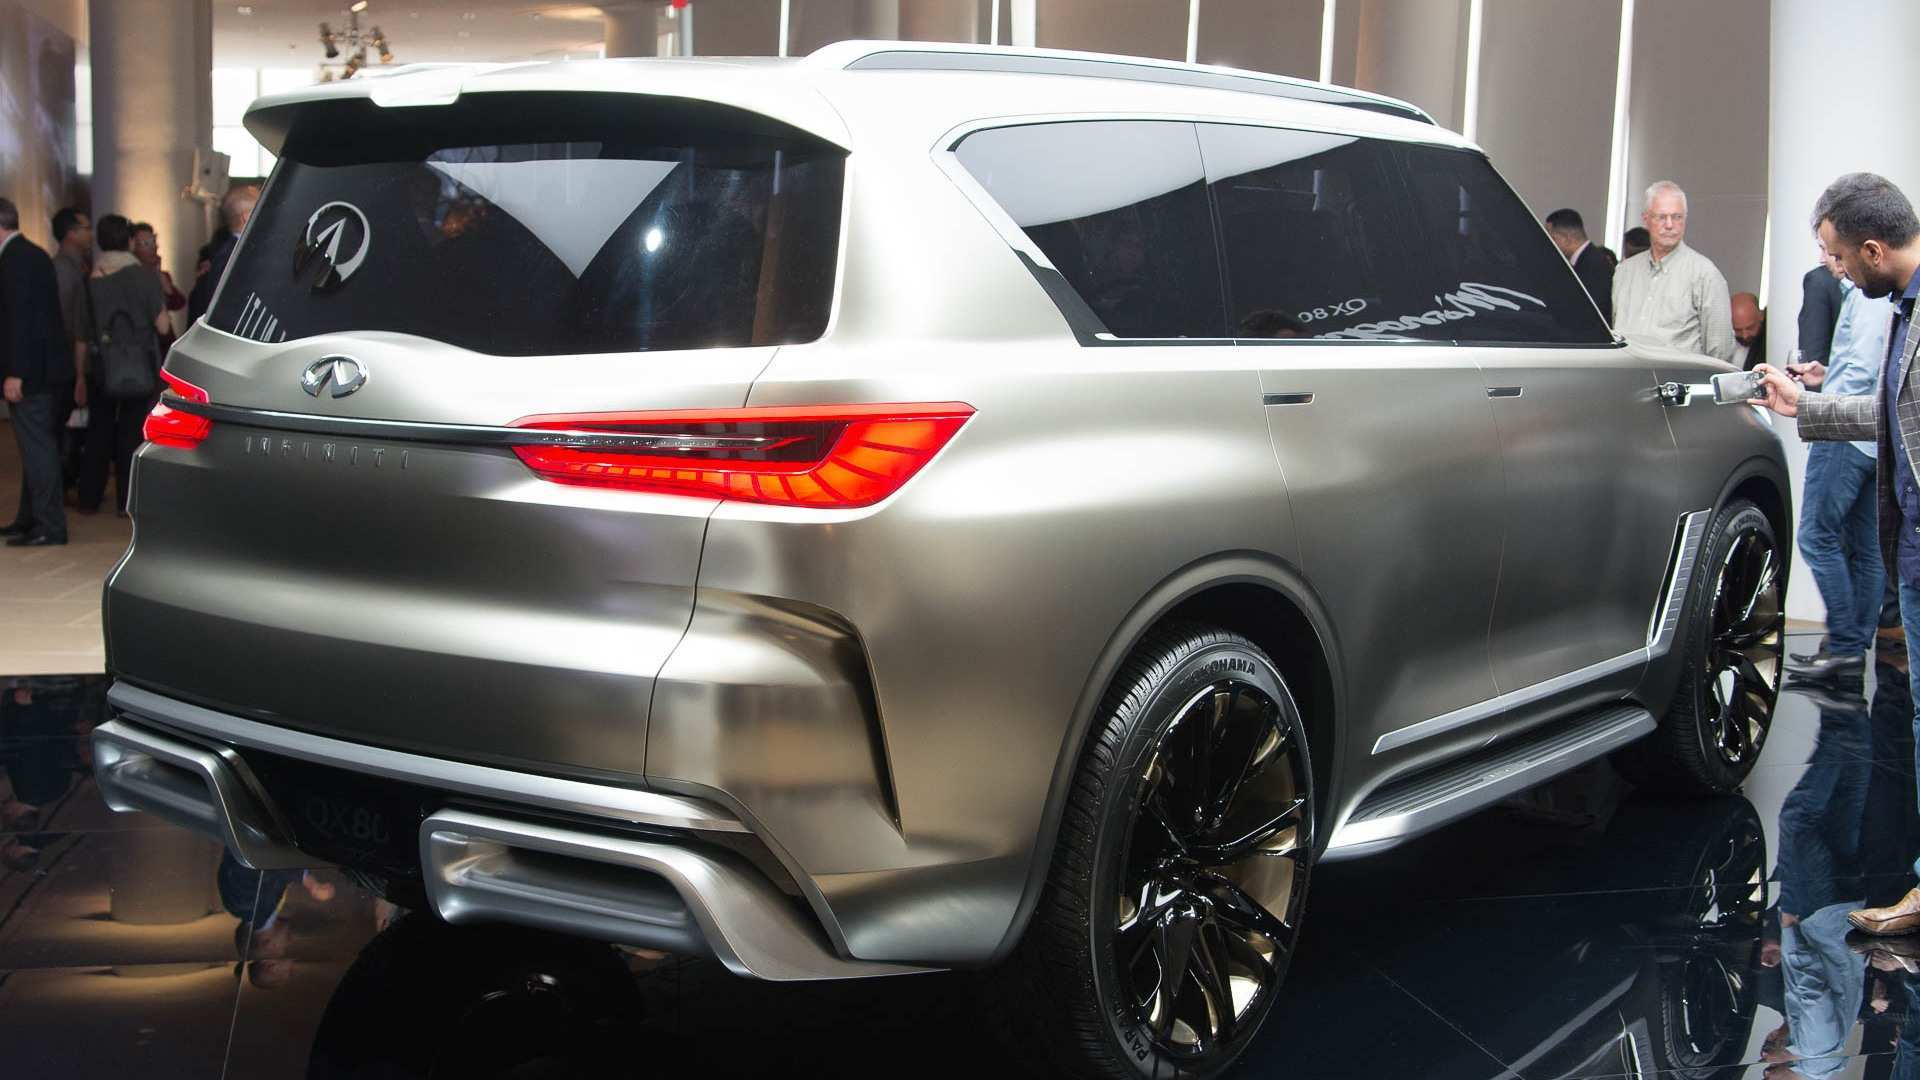 76 Great 2020 Infiniti Qx80 Concept Configurations for 2020 Infiniti Qx80 Concept